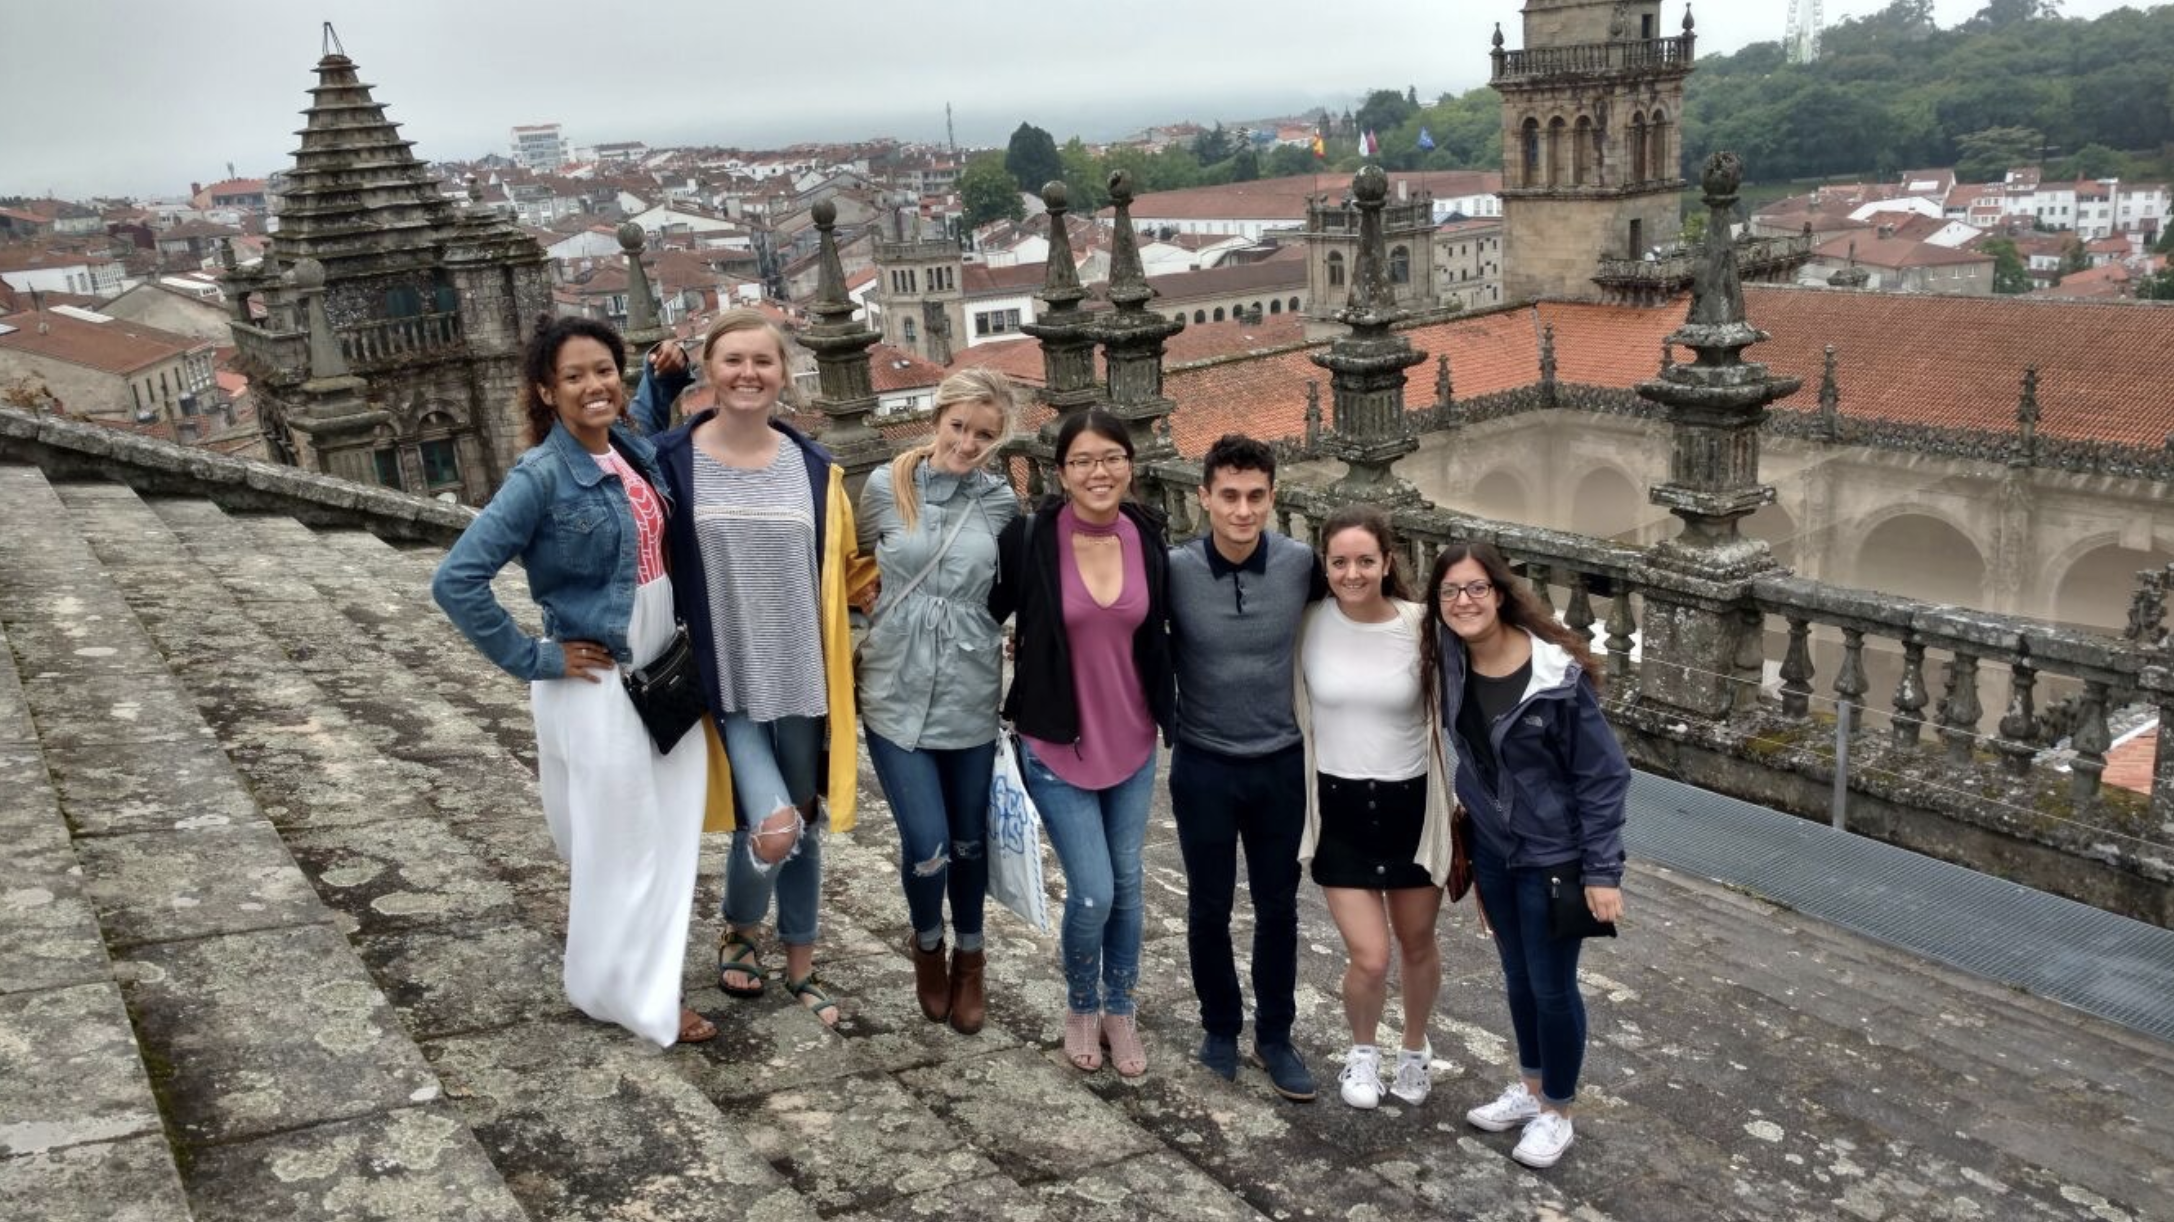 Us on the roof of the Santiago de Compostela Cathedral, overlooking the rest of the old city.